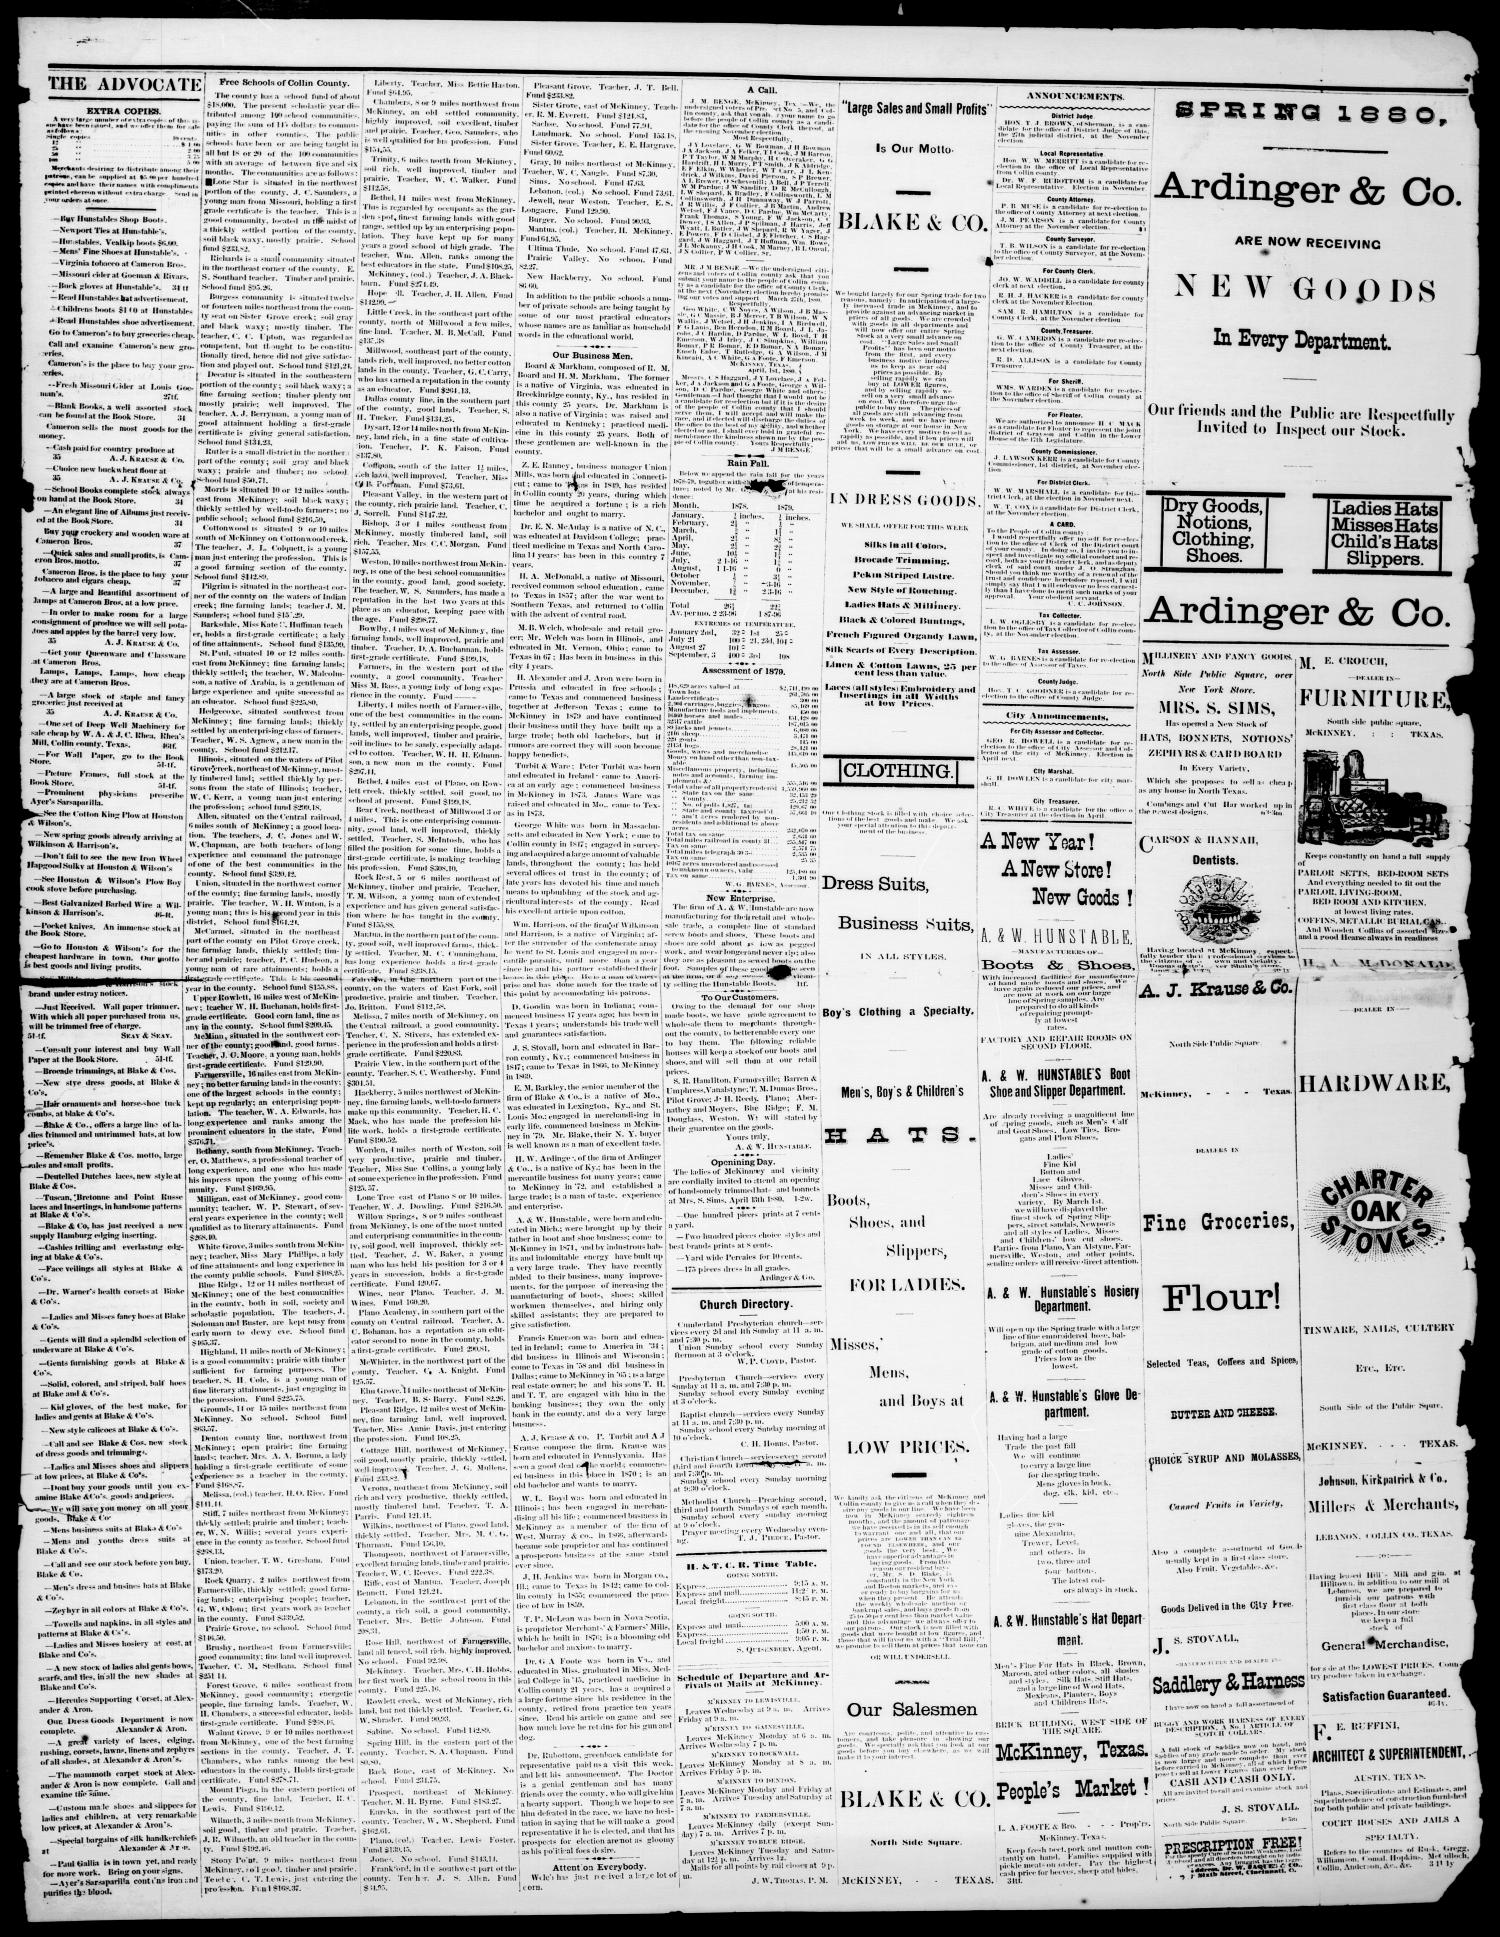 The McKinney Advocate. (McKinney, Tex.), Vol. 4, No. 1, Ed. 1 Saturday, April 3, 1880                                                                                                      [Sequence #]: 3 of 4